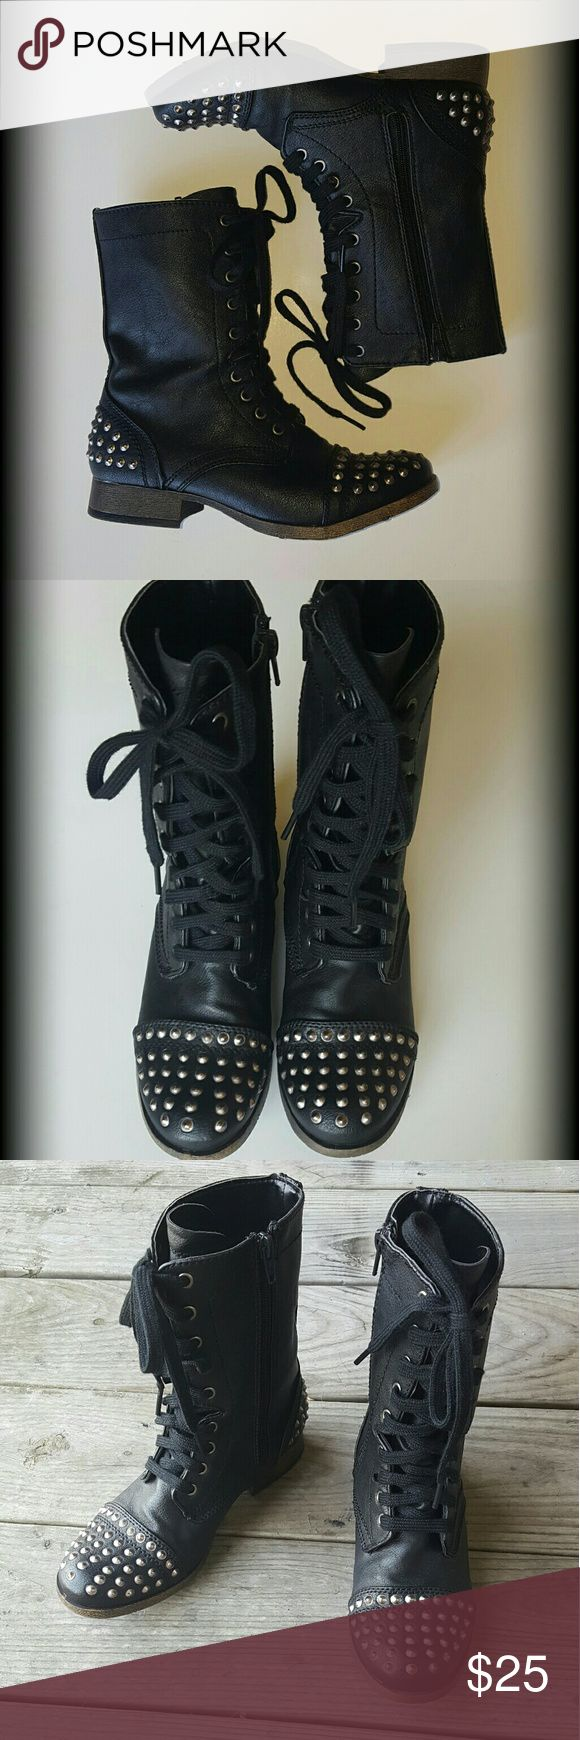 Black Studded Combat Boots Candies Black Combat Boots lined with Studs on the heel & toe.  Size 6   NEVER WORN   no tags  Zipper on the insides of the shoes  Thanks for reading and have a great day! Candie's Shoes Combat & Moto Boots